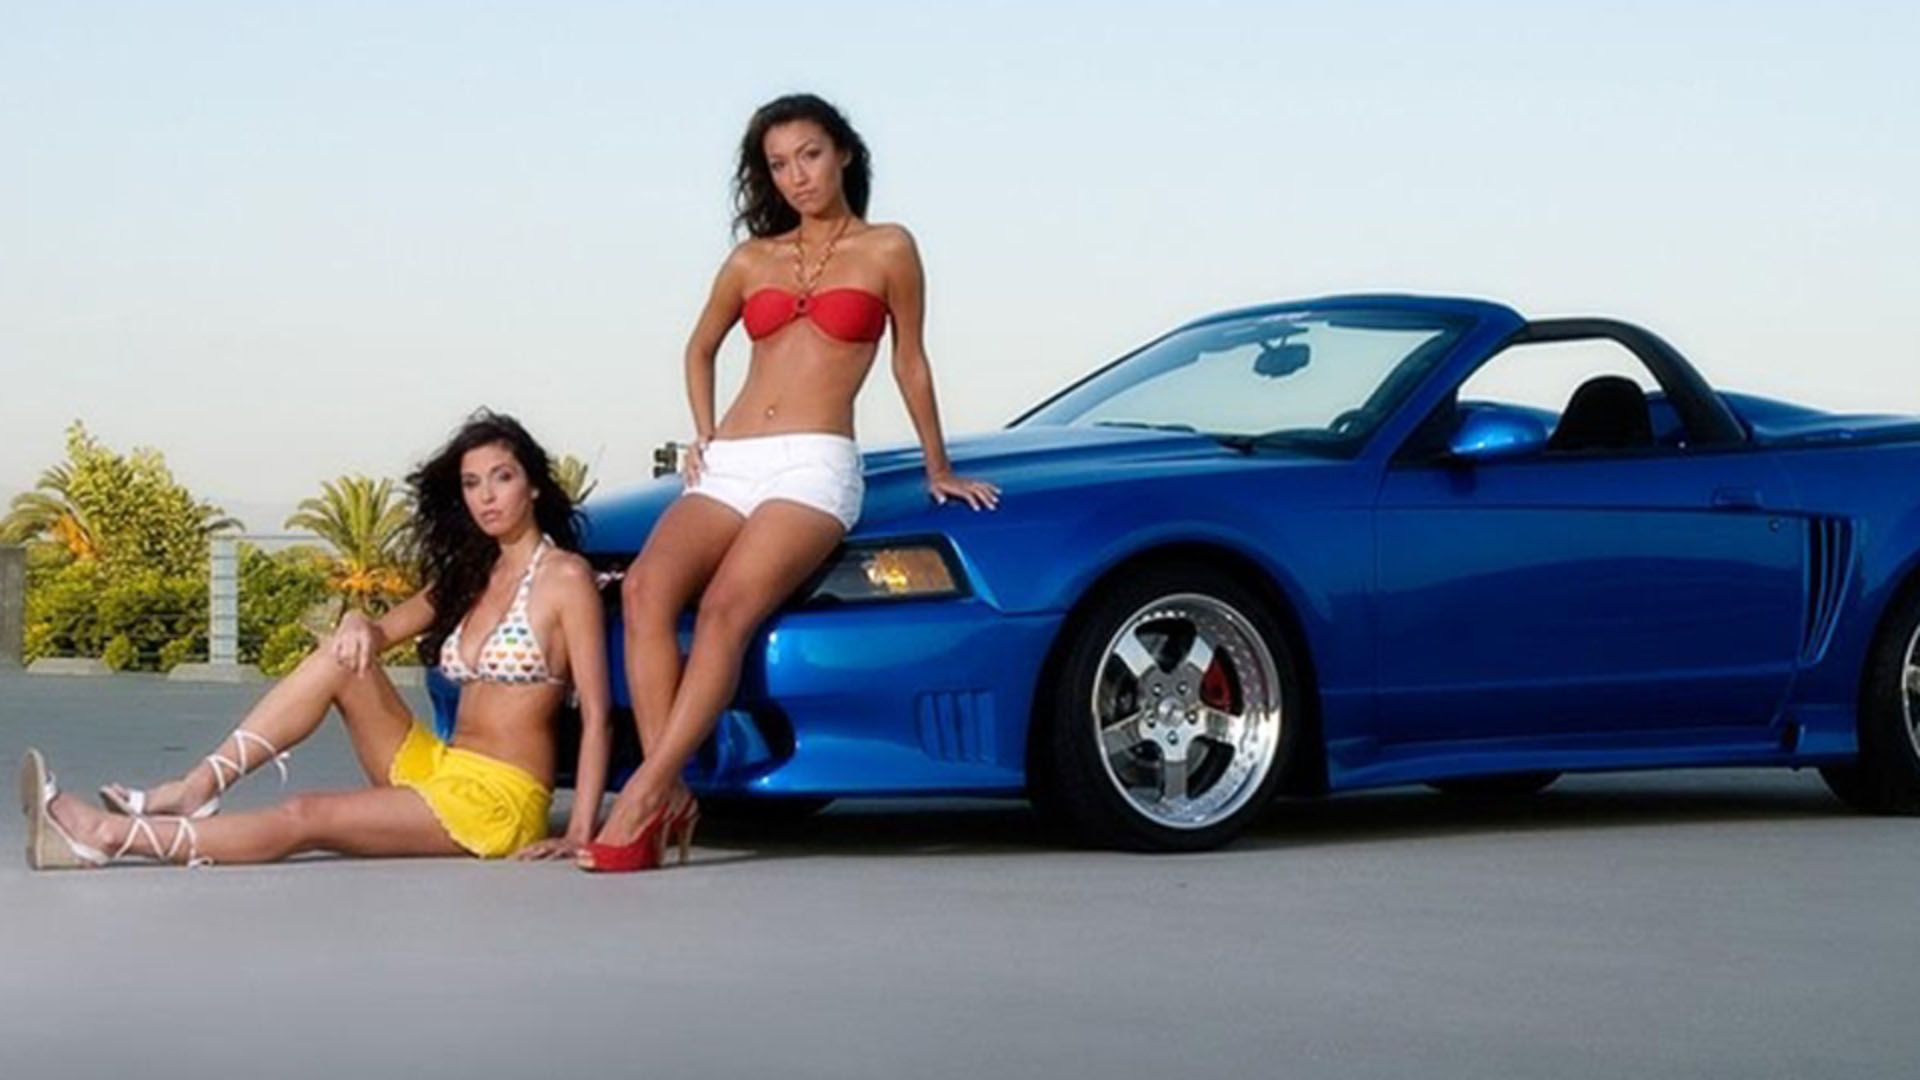 Nude Girls And Mustangs, Elizabeth Marxs And Ali Rose Wallpapers